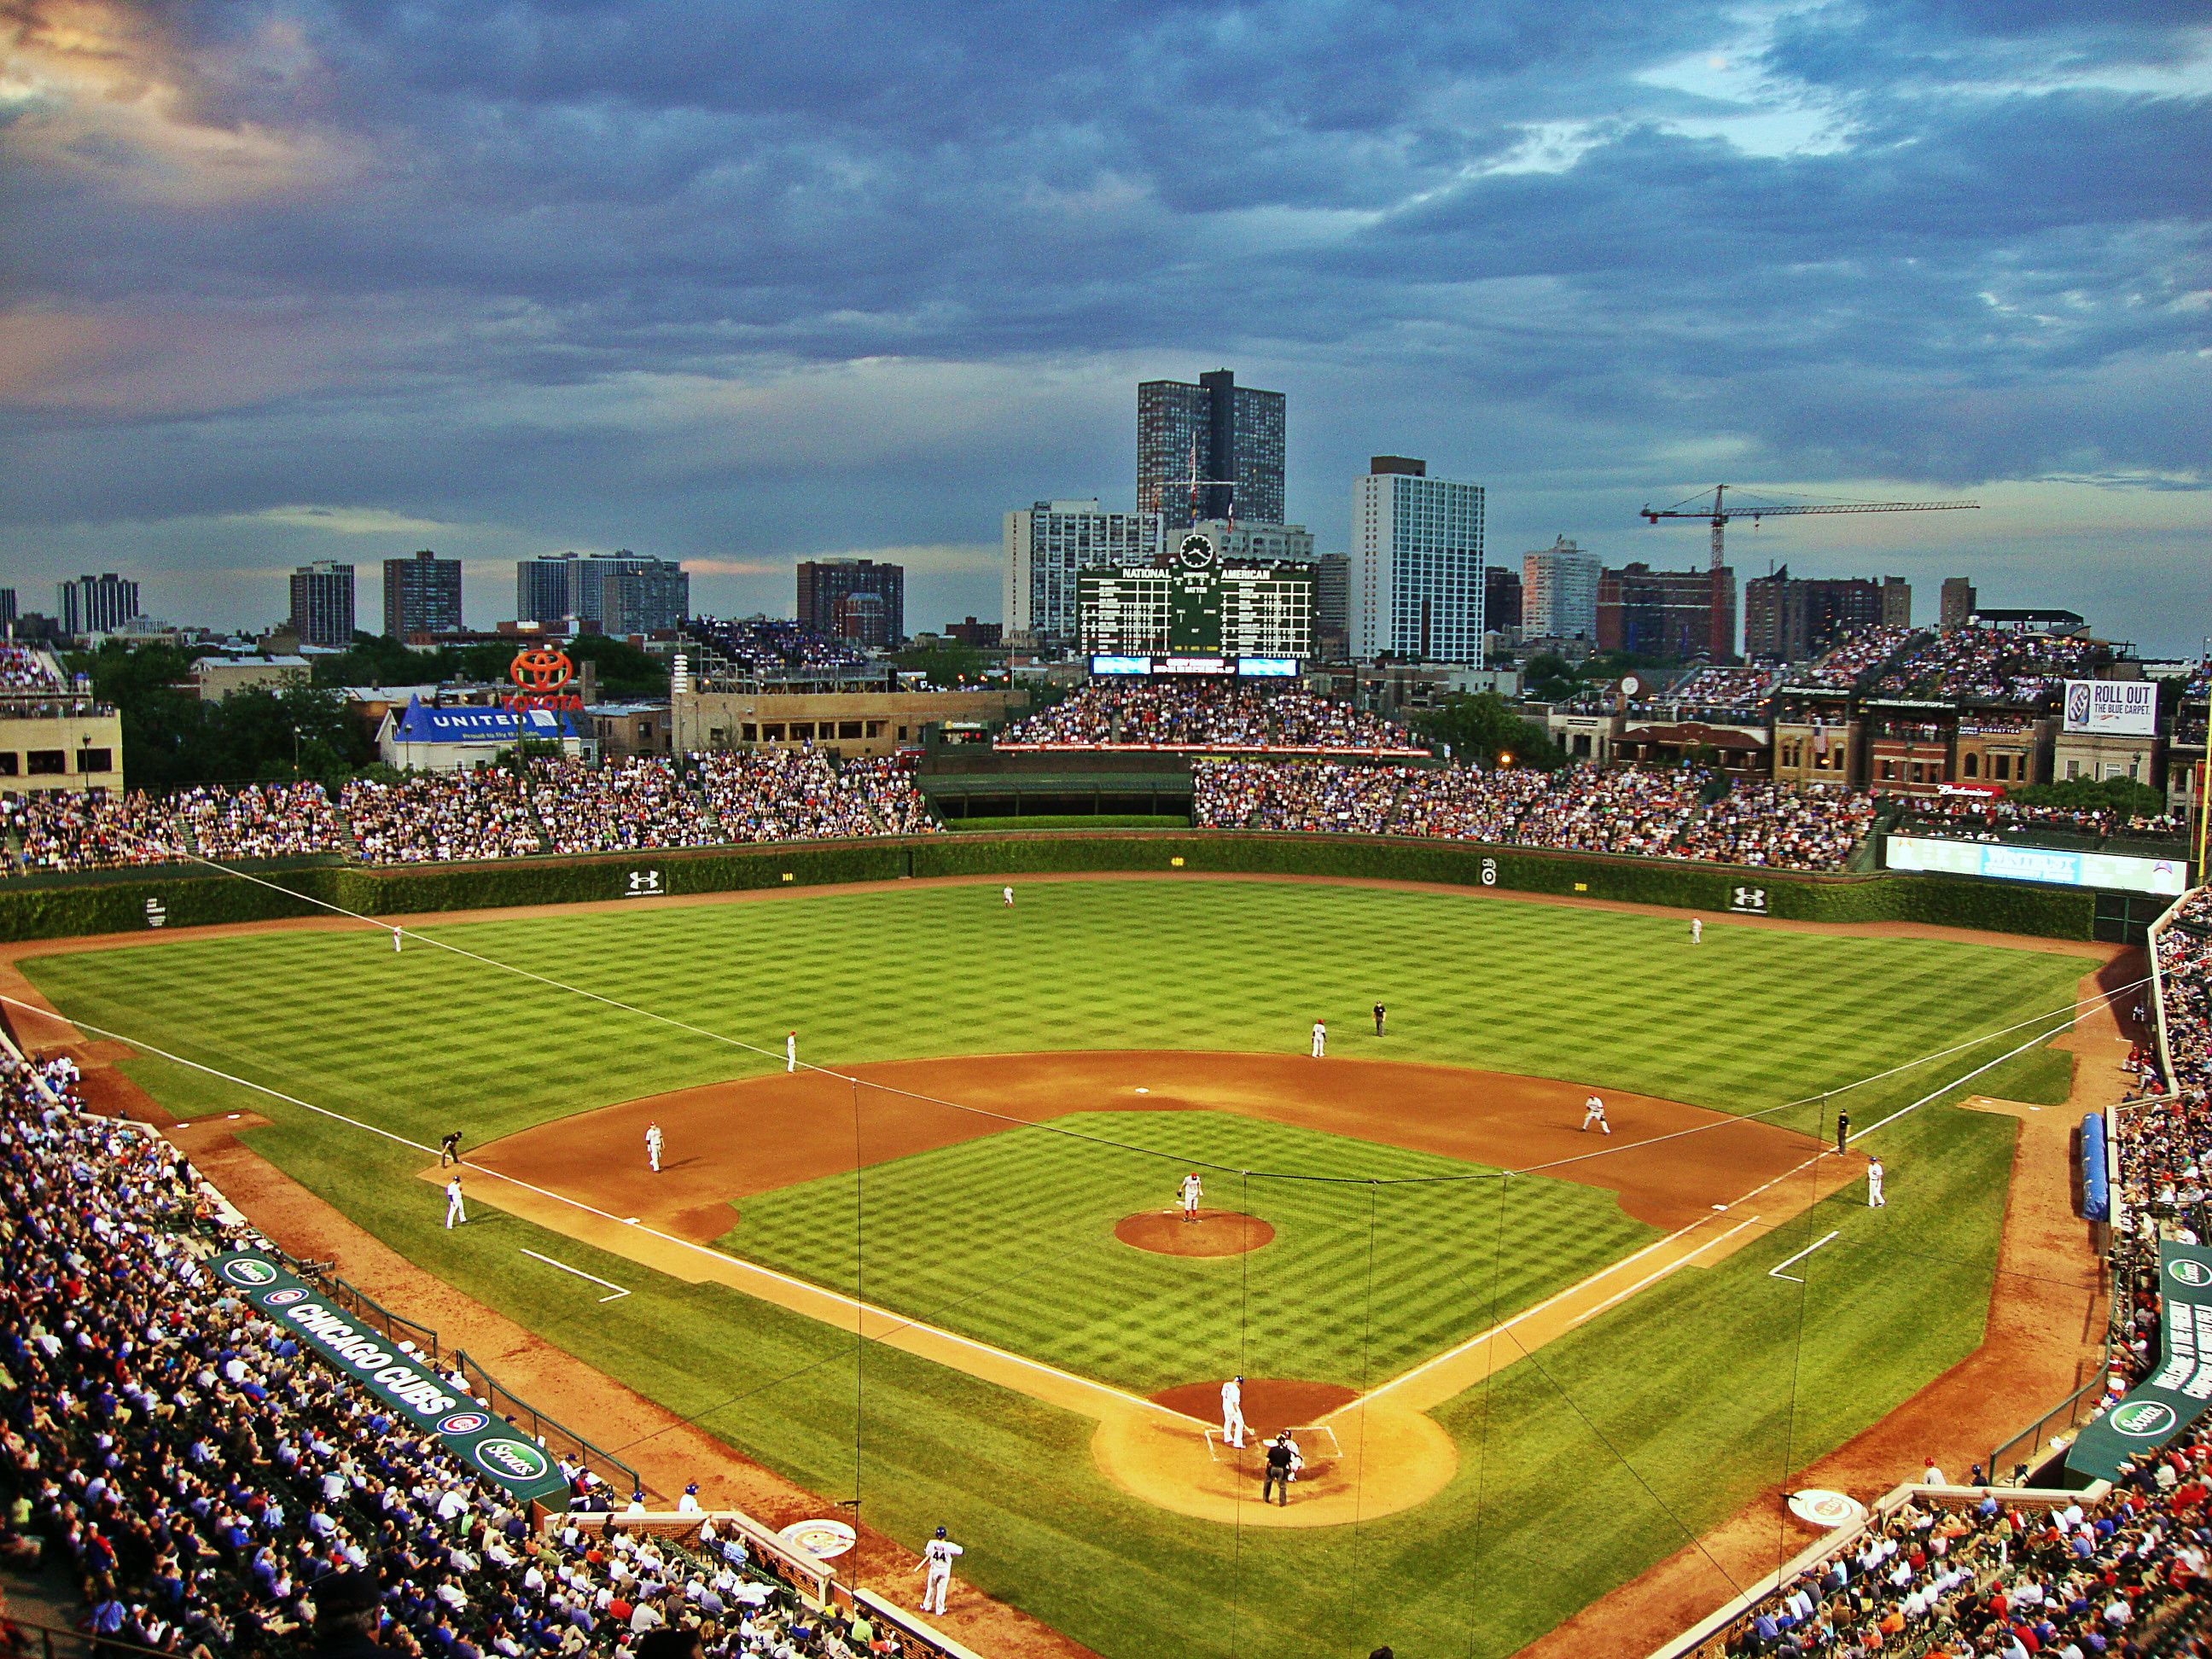 Sunset Over Wrigley Wrigley Field Chicago Cubs Baseball Wrigley Field Chicago